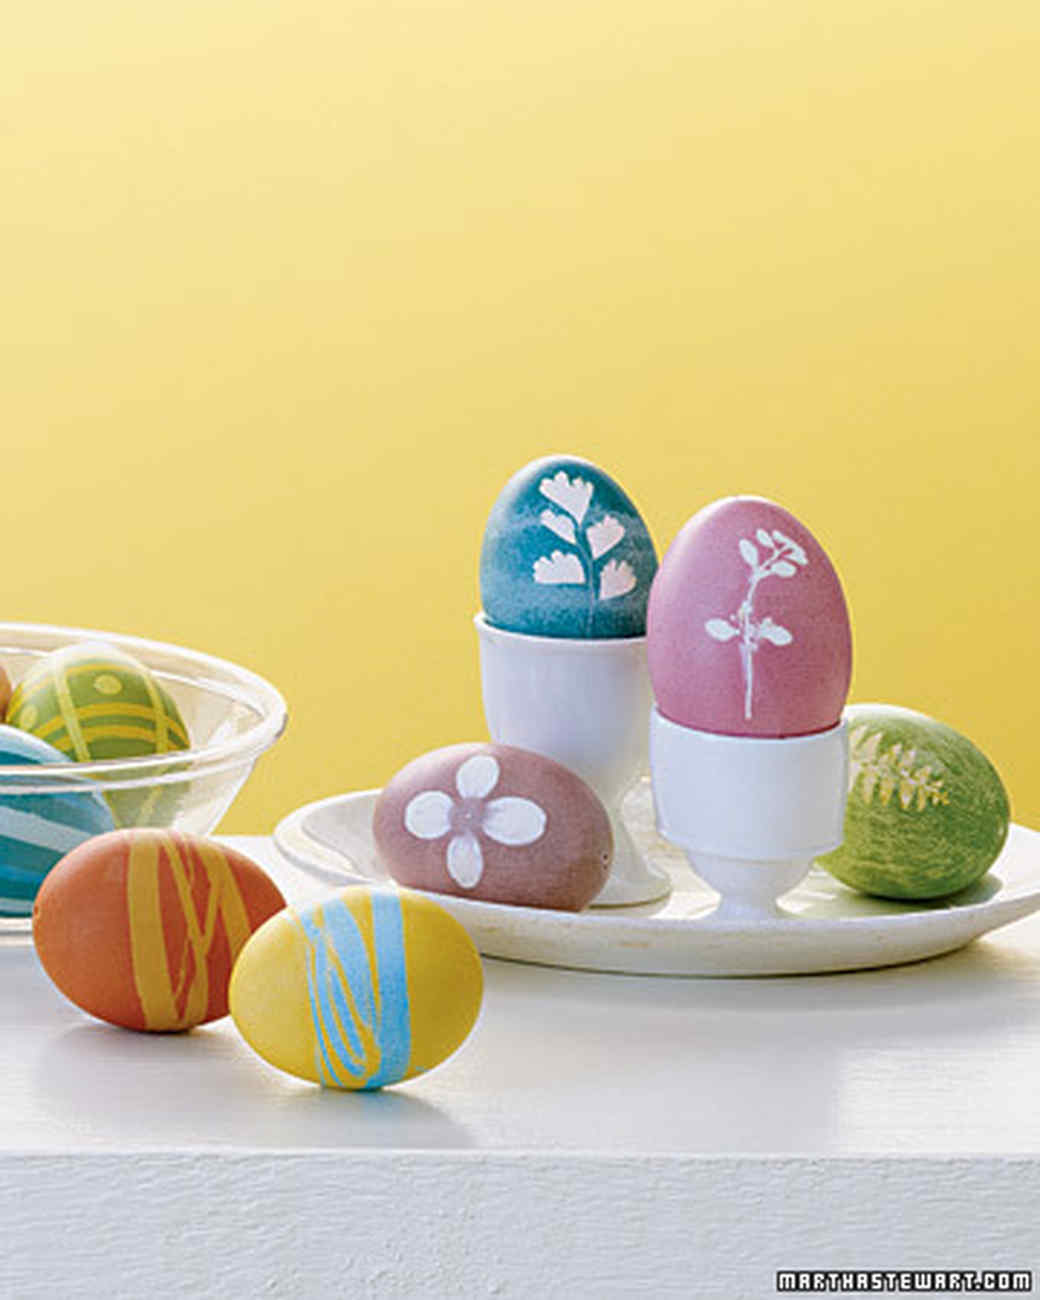 10 Egg-stremely Easy Easter Egg DIYs - Quicken Loans Zing Blog